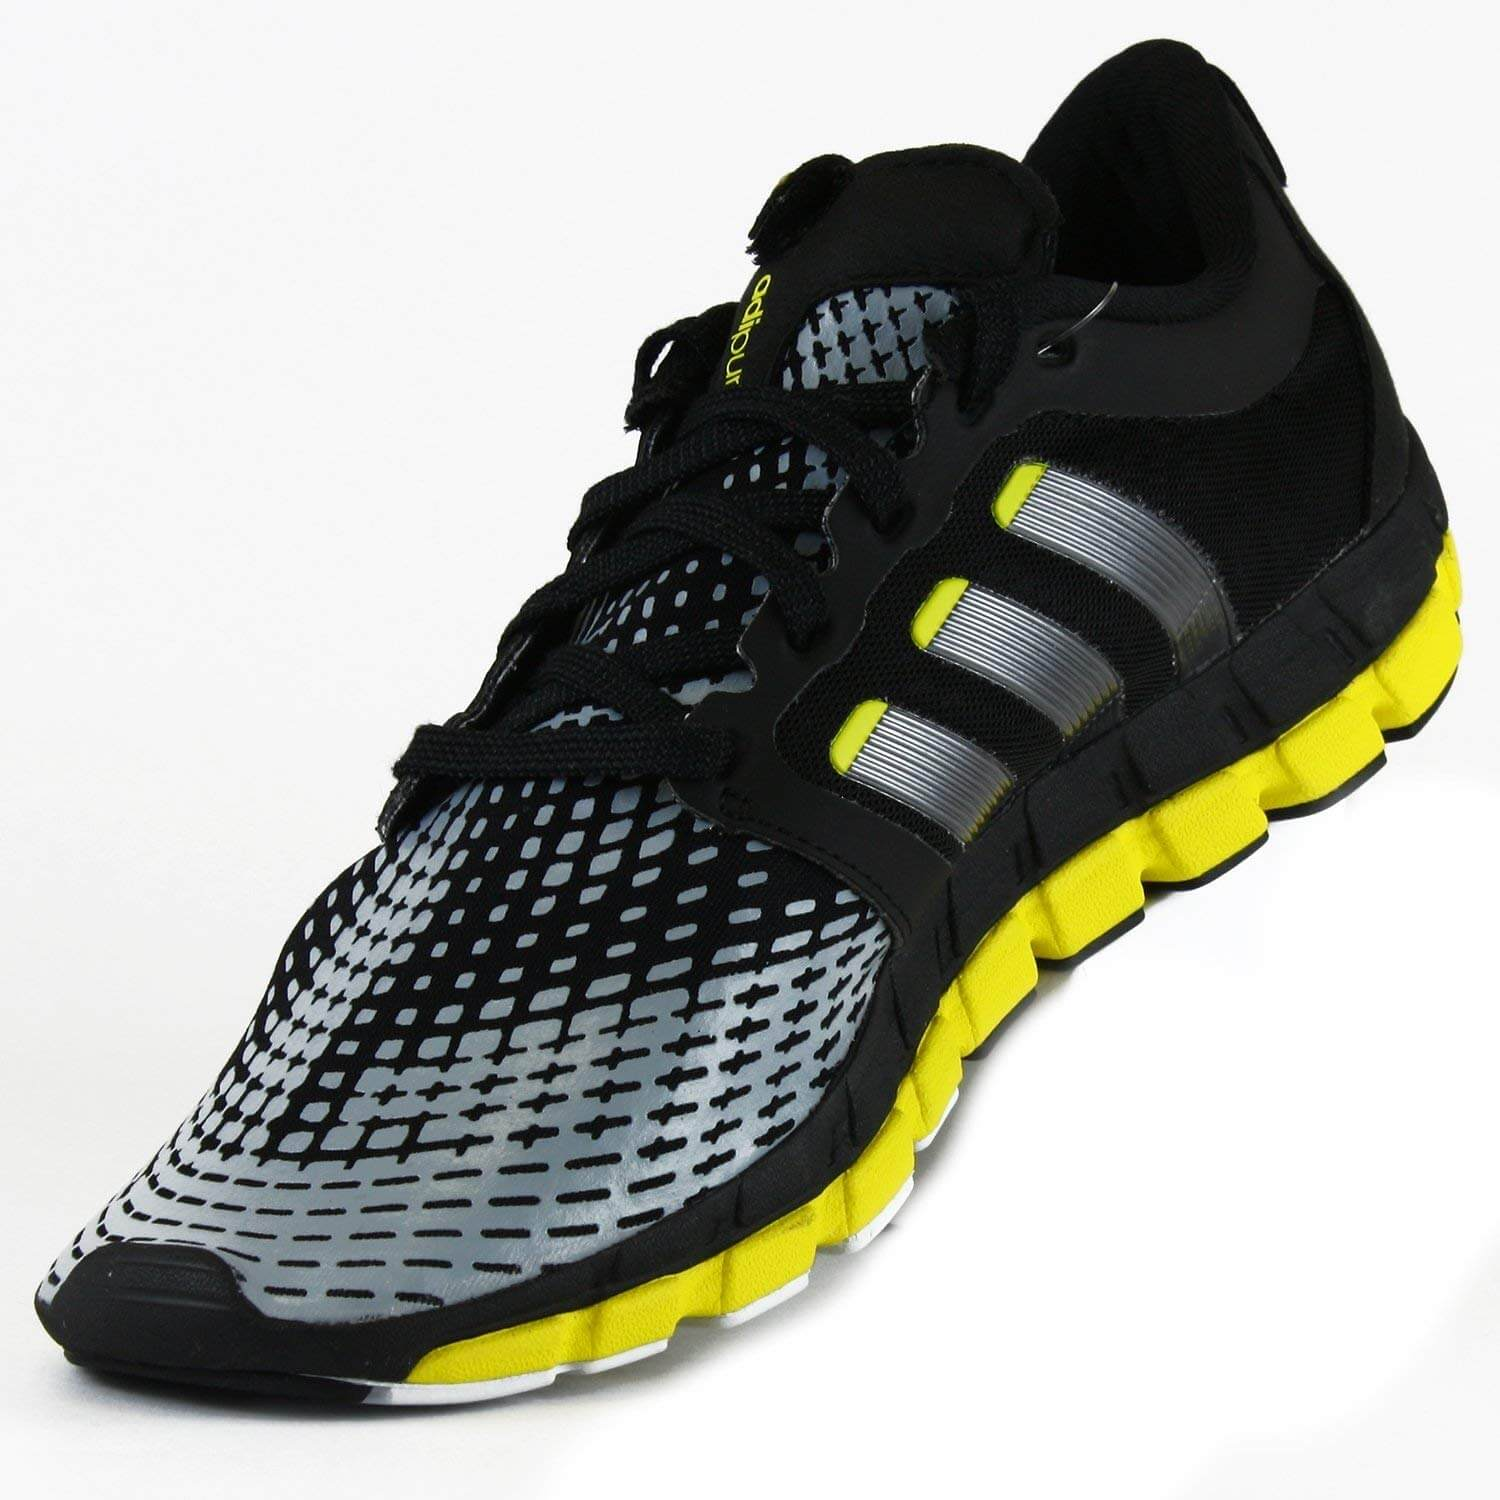 the latest f479a 96f0f Adidas Adipure Motion Review - Buy or Not in Mar 2019